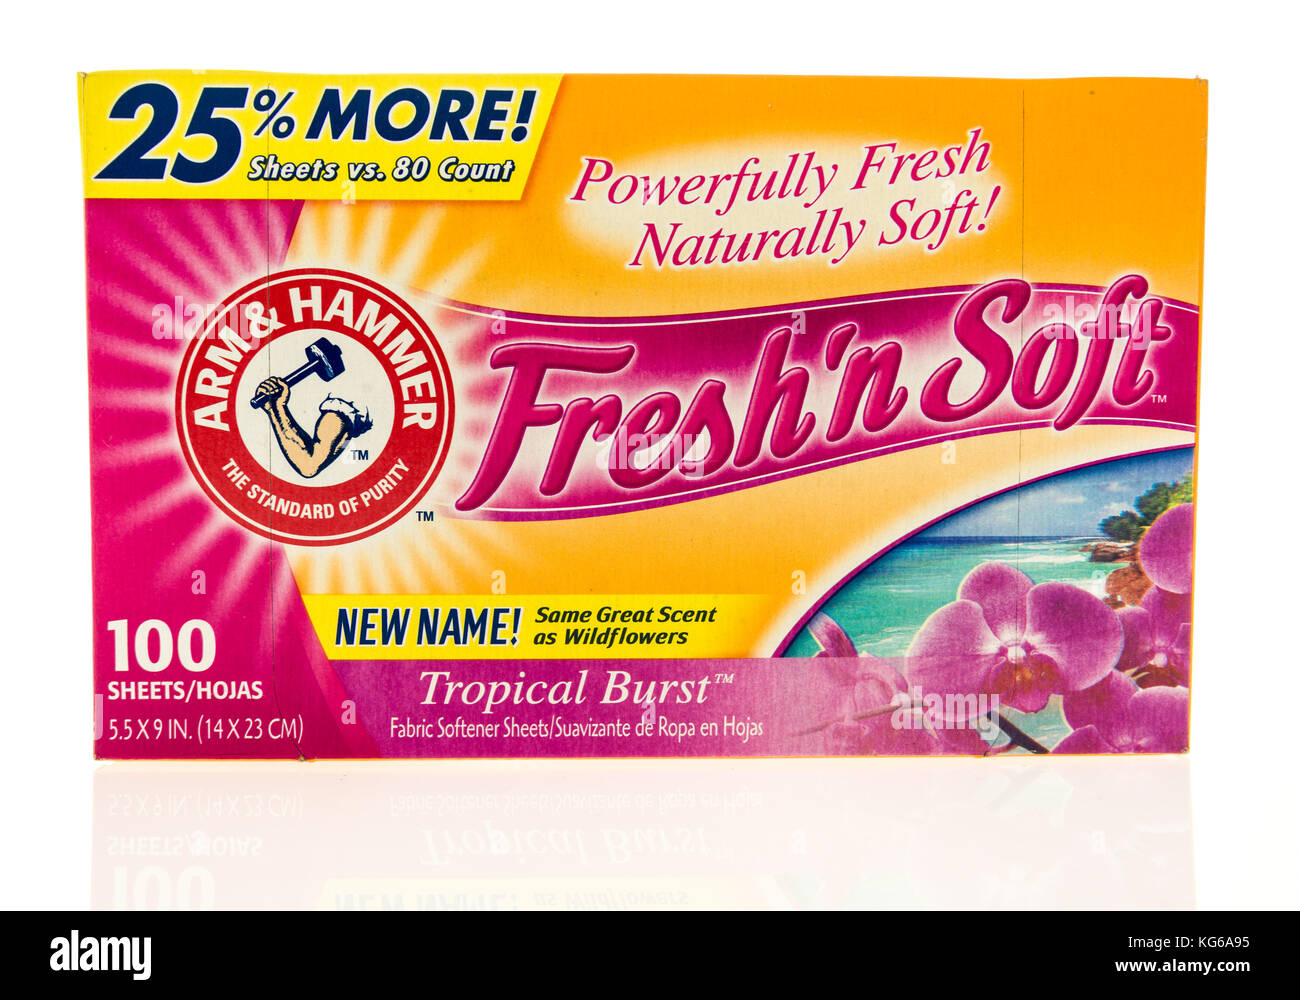 Winneconne, WI - 31 October 2017:  A container of Arm & Hammer Fresh'n Soft fabric softner sheets on an isolated Stock Photo